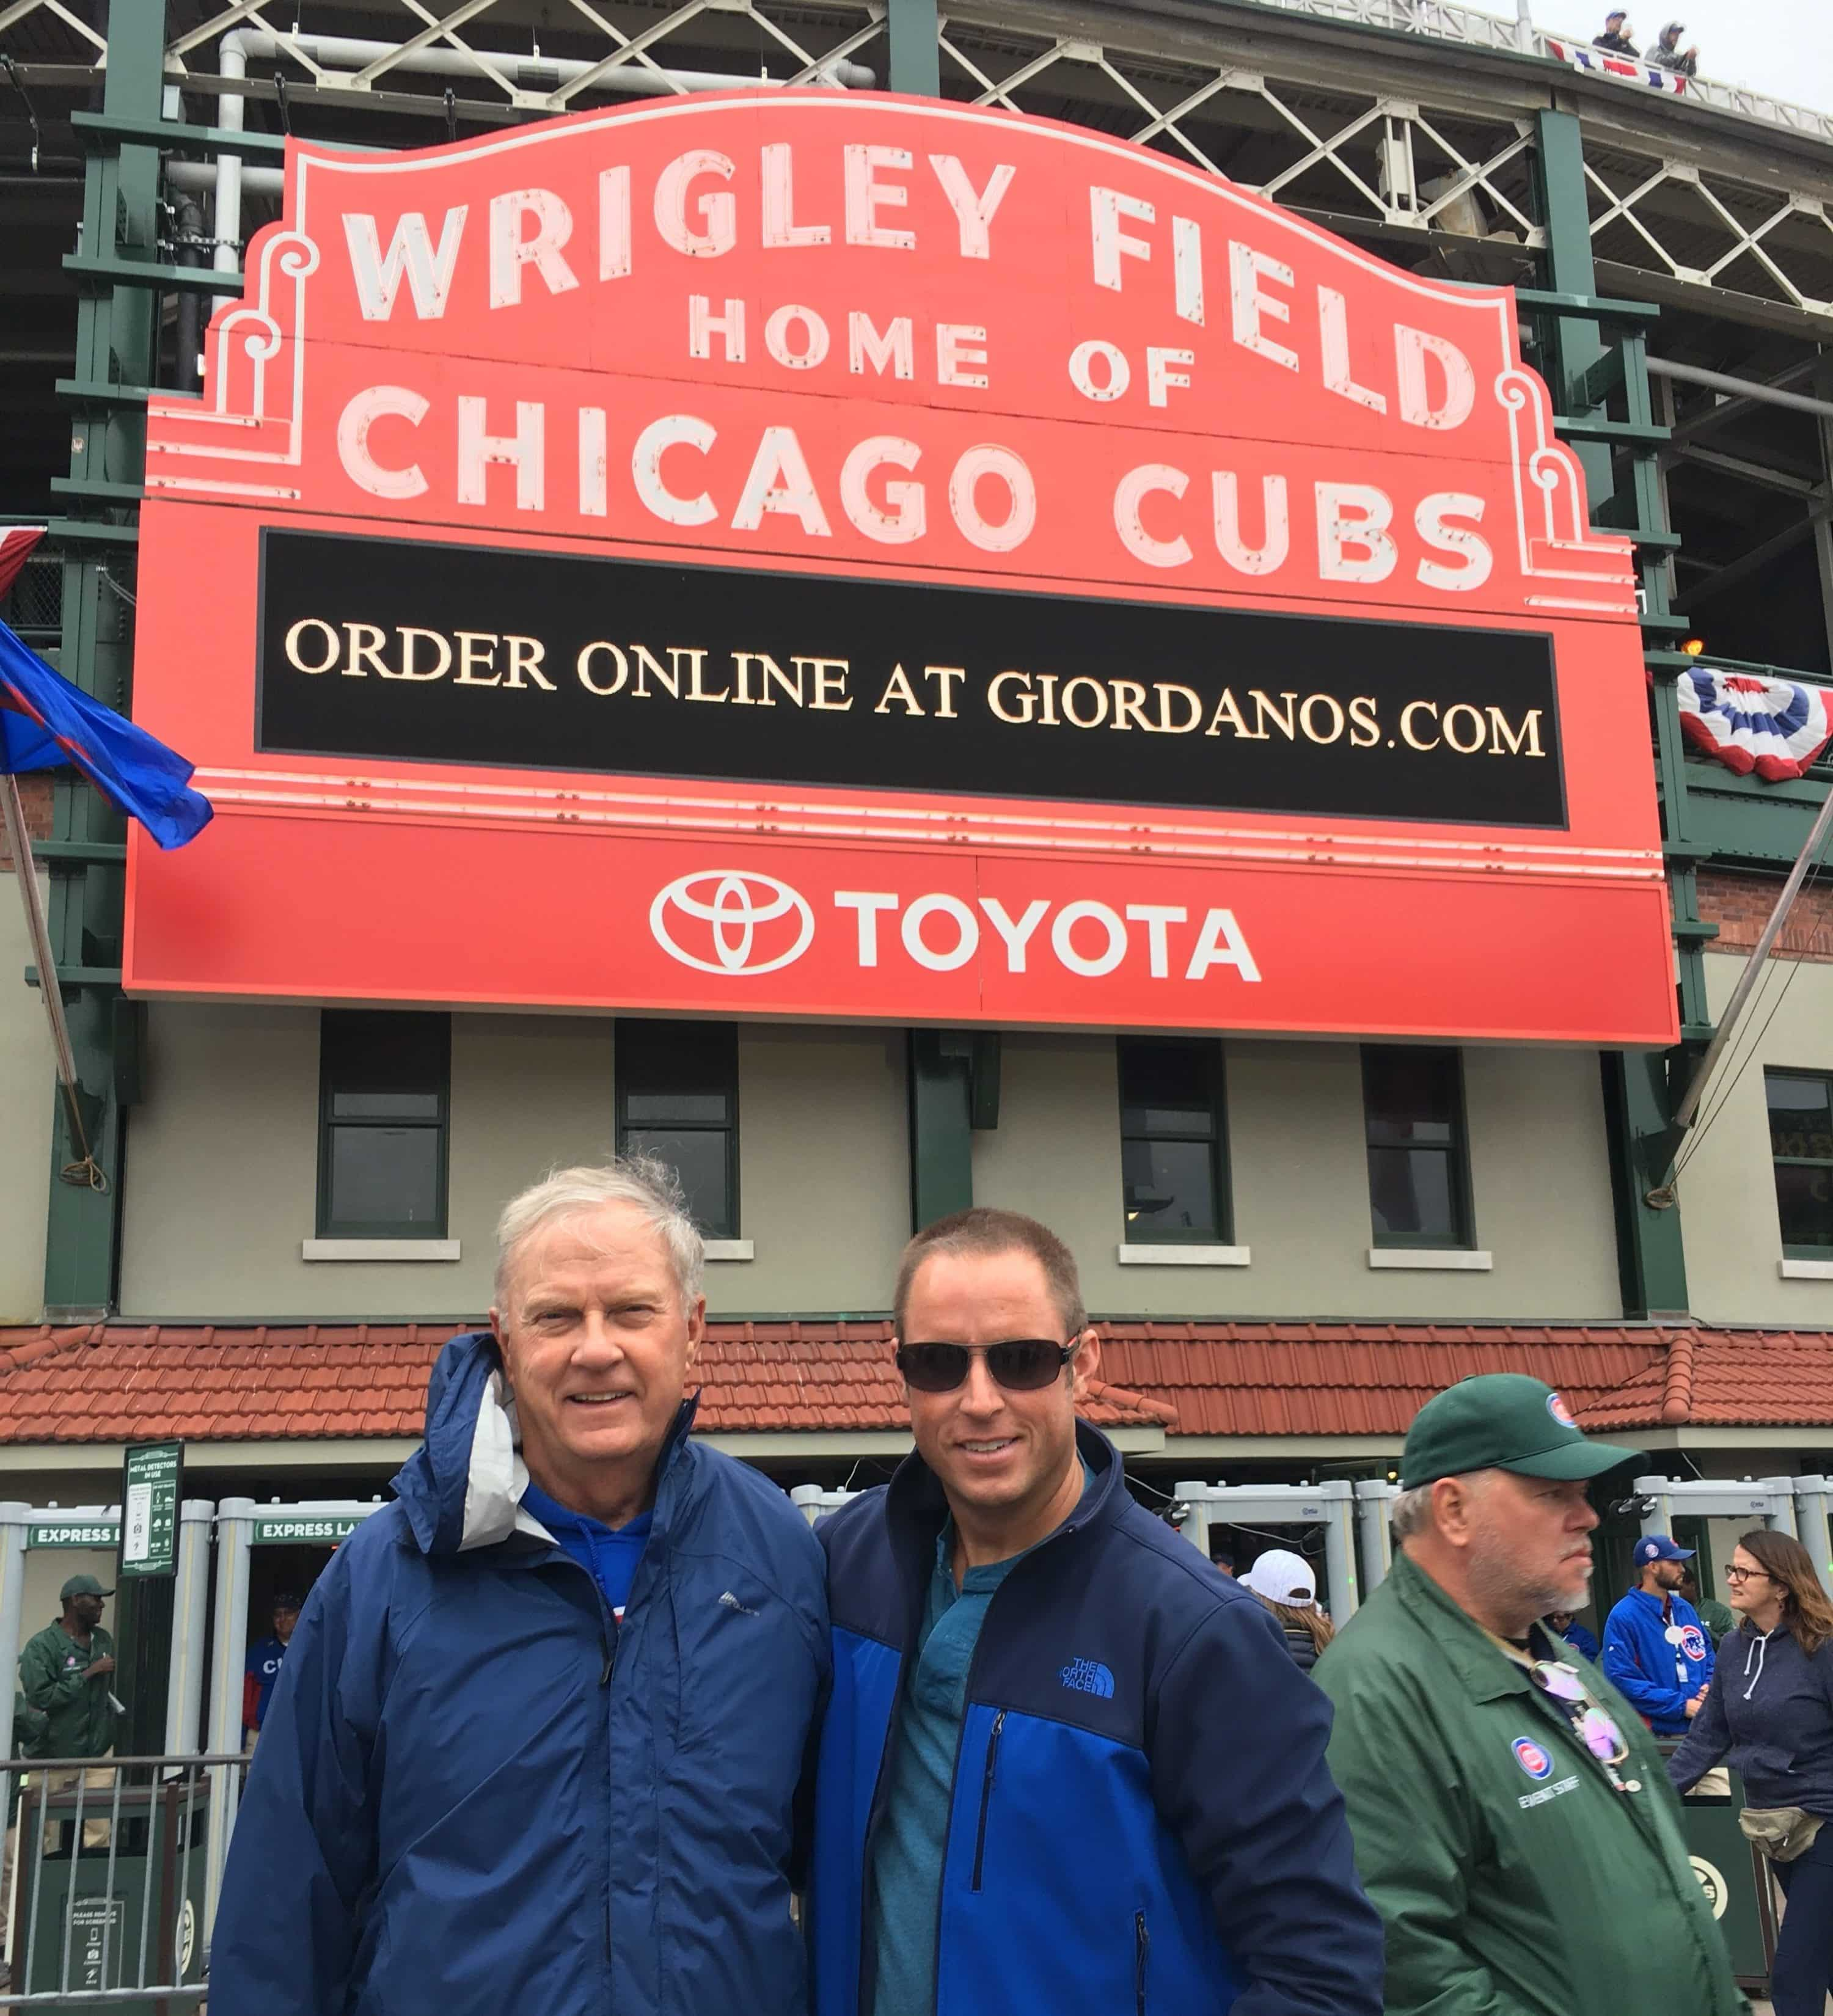 Chad Barrett + his dad at Wrigley Field